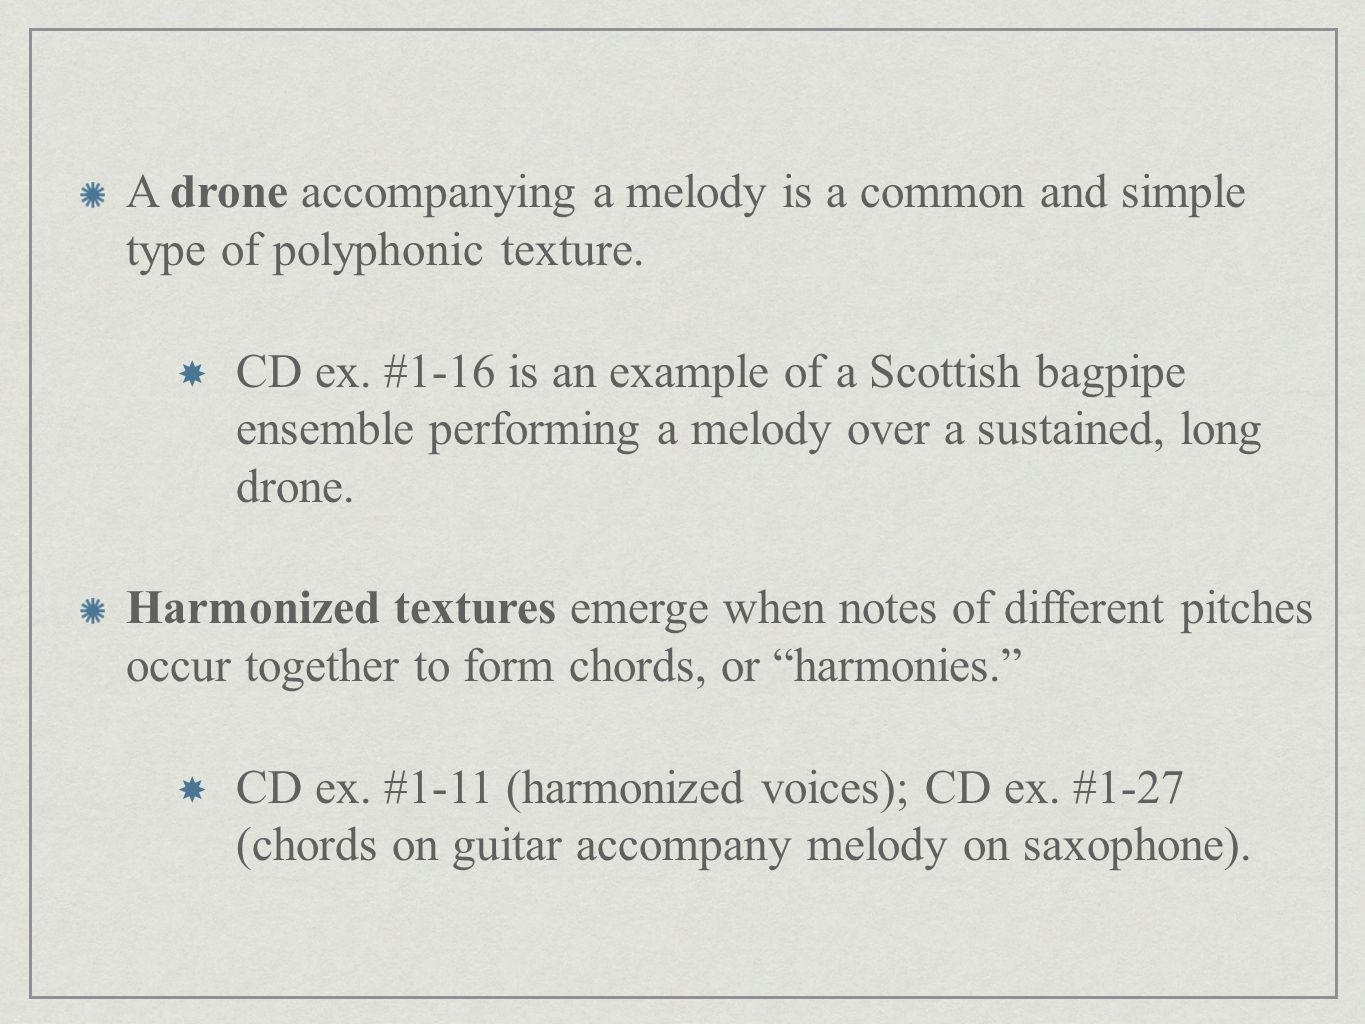 A drone accompanying a melody is a common and simple type of polyphonic texture.